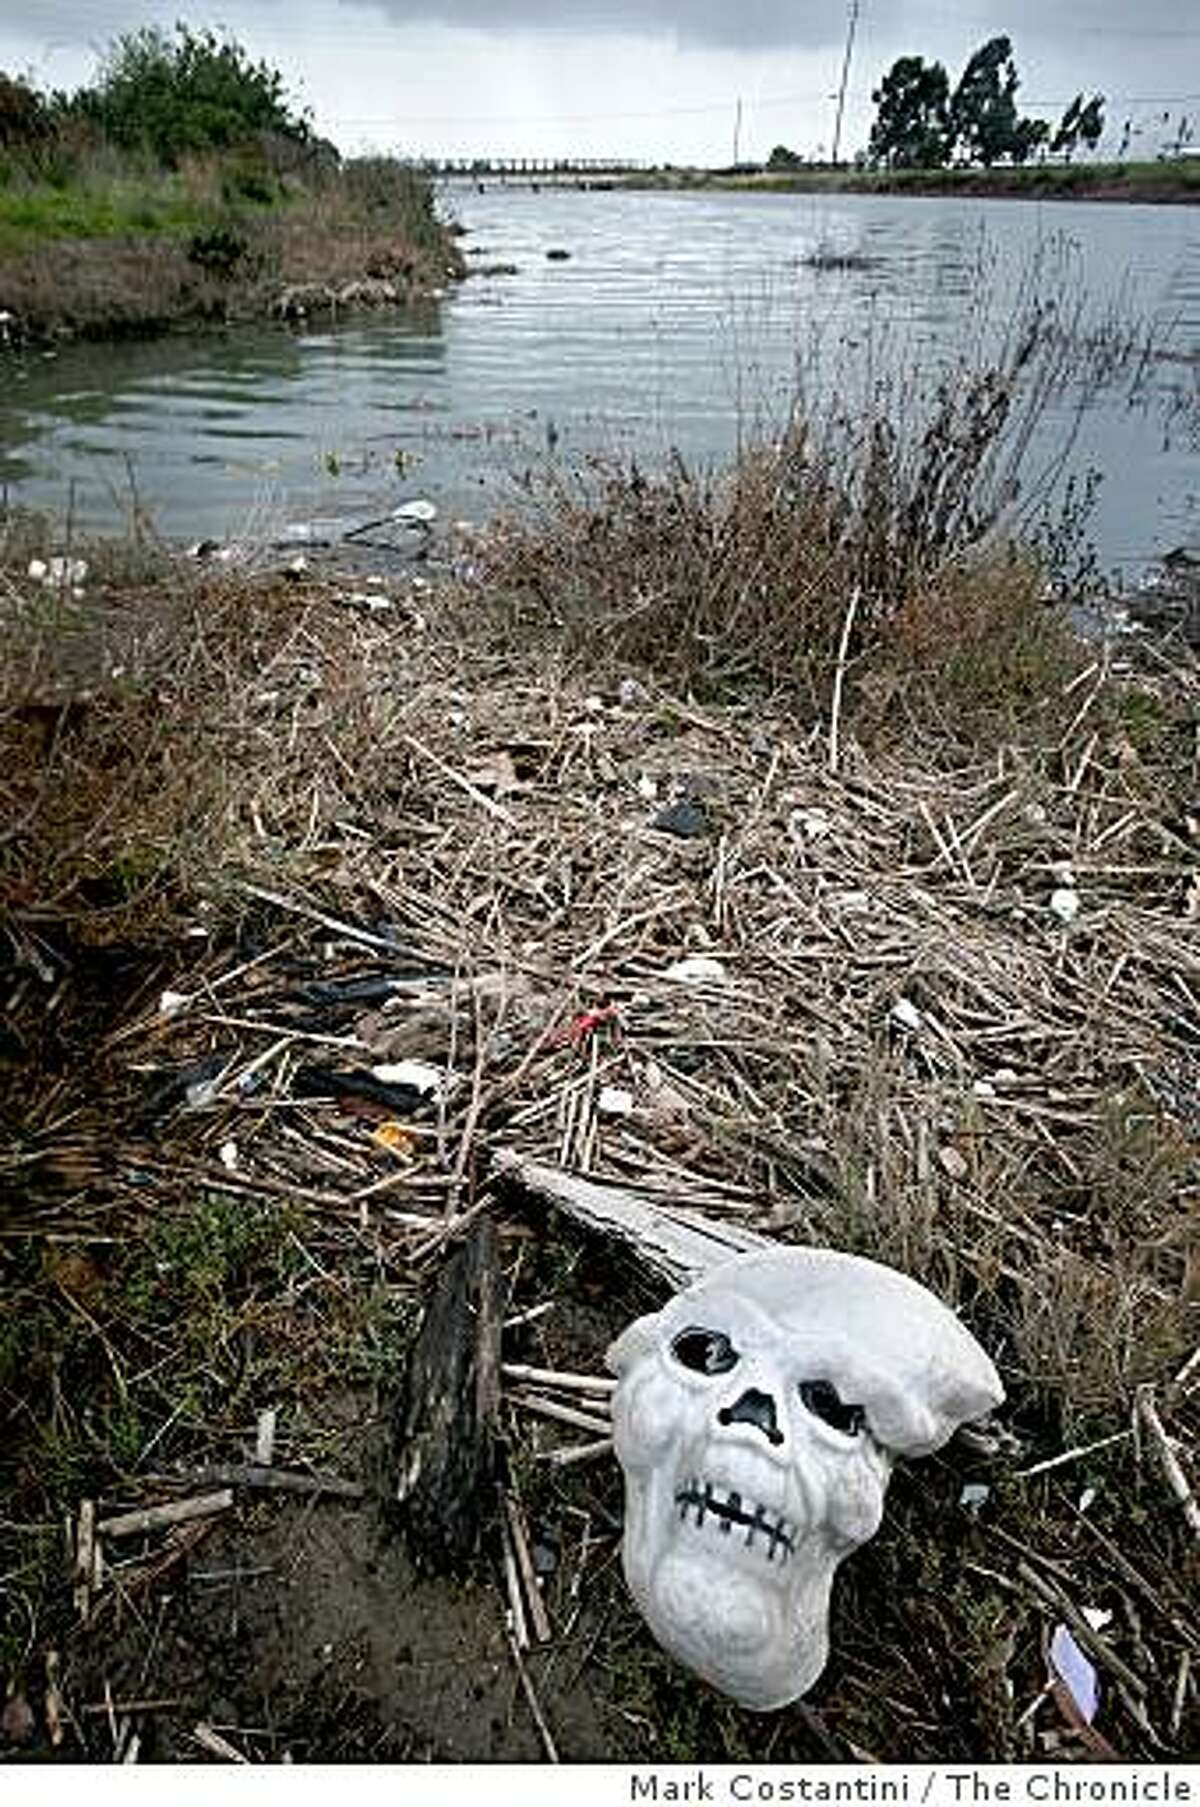 Garbage litters the waterway as water from Damon Sloug flows to the Bay in Oakland, Calif. on Wednesday, February 11, 2009.